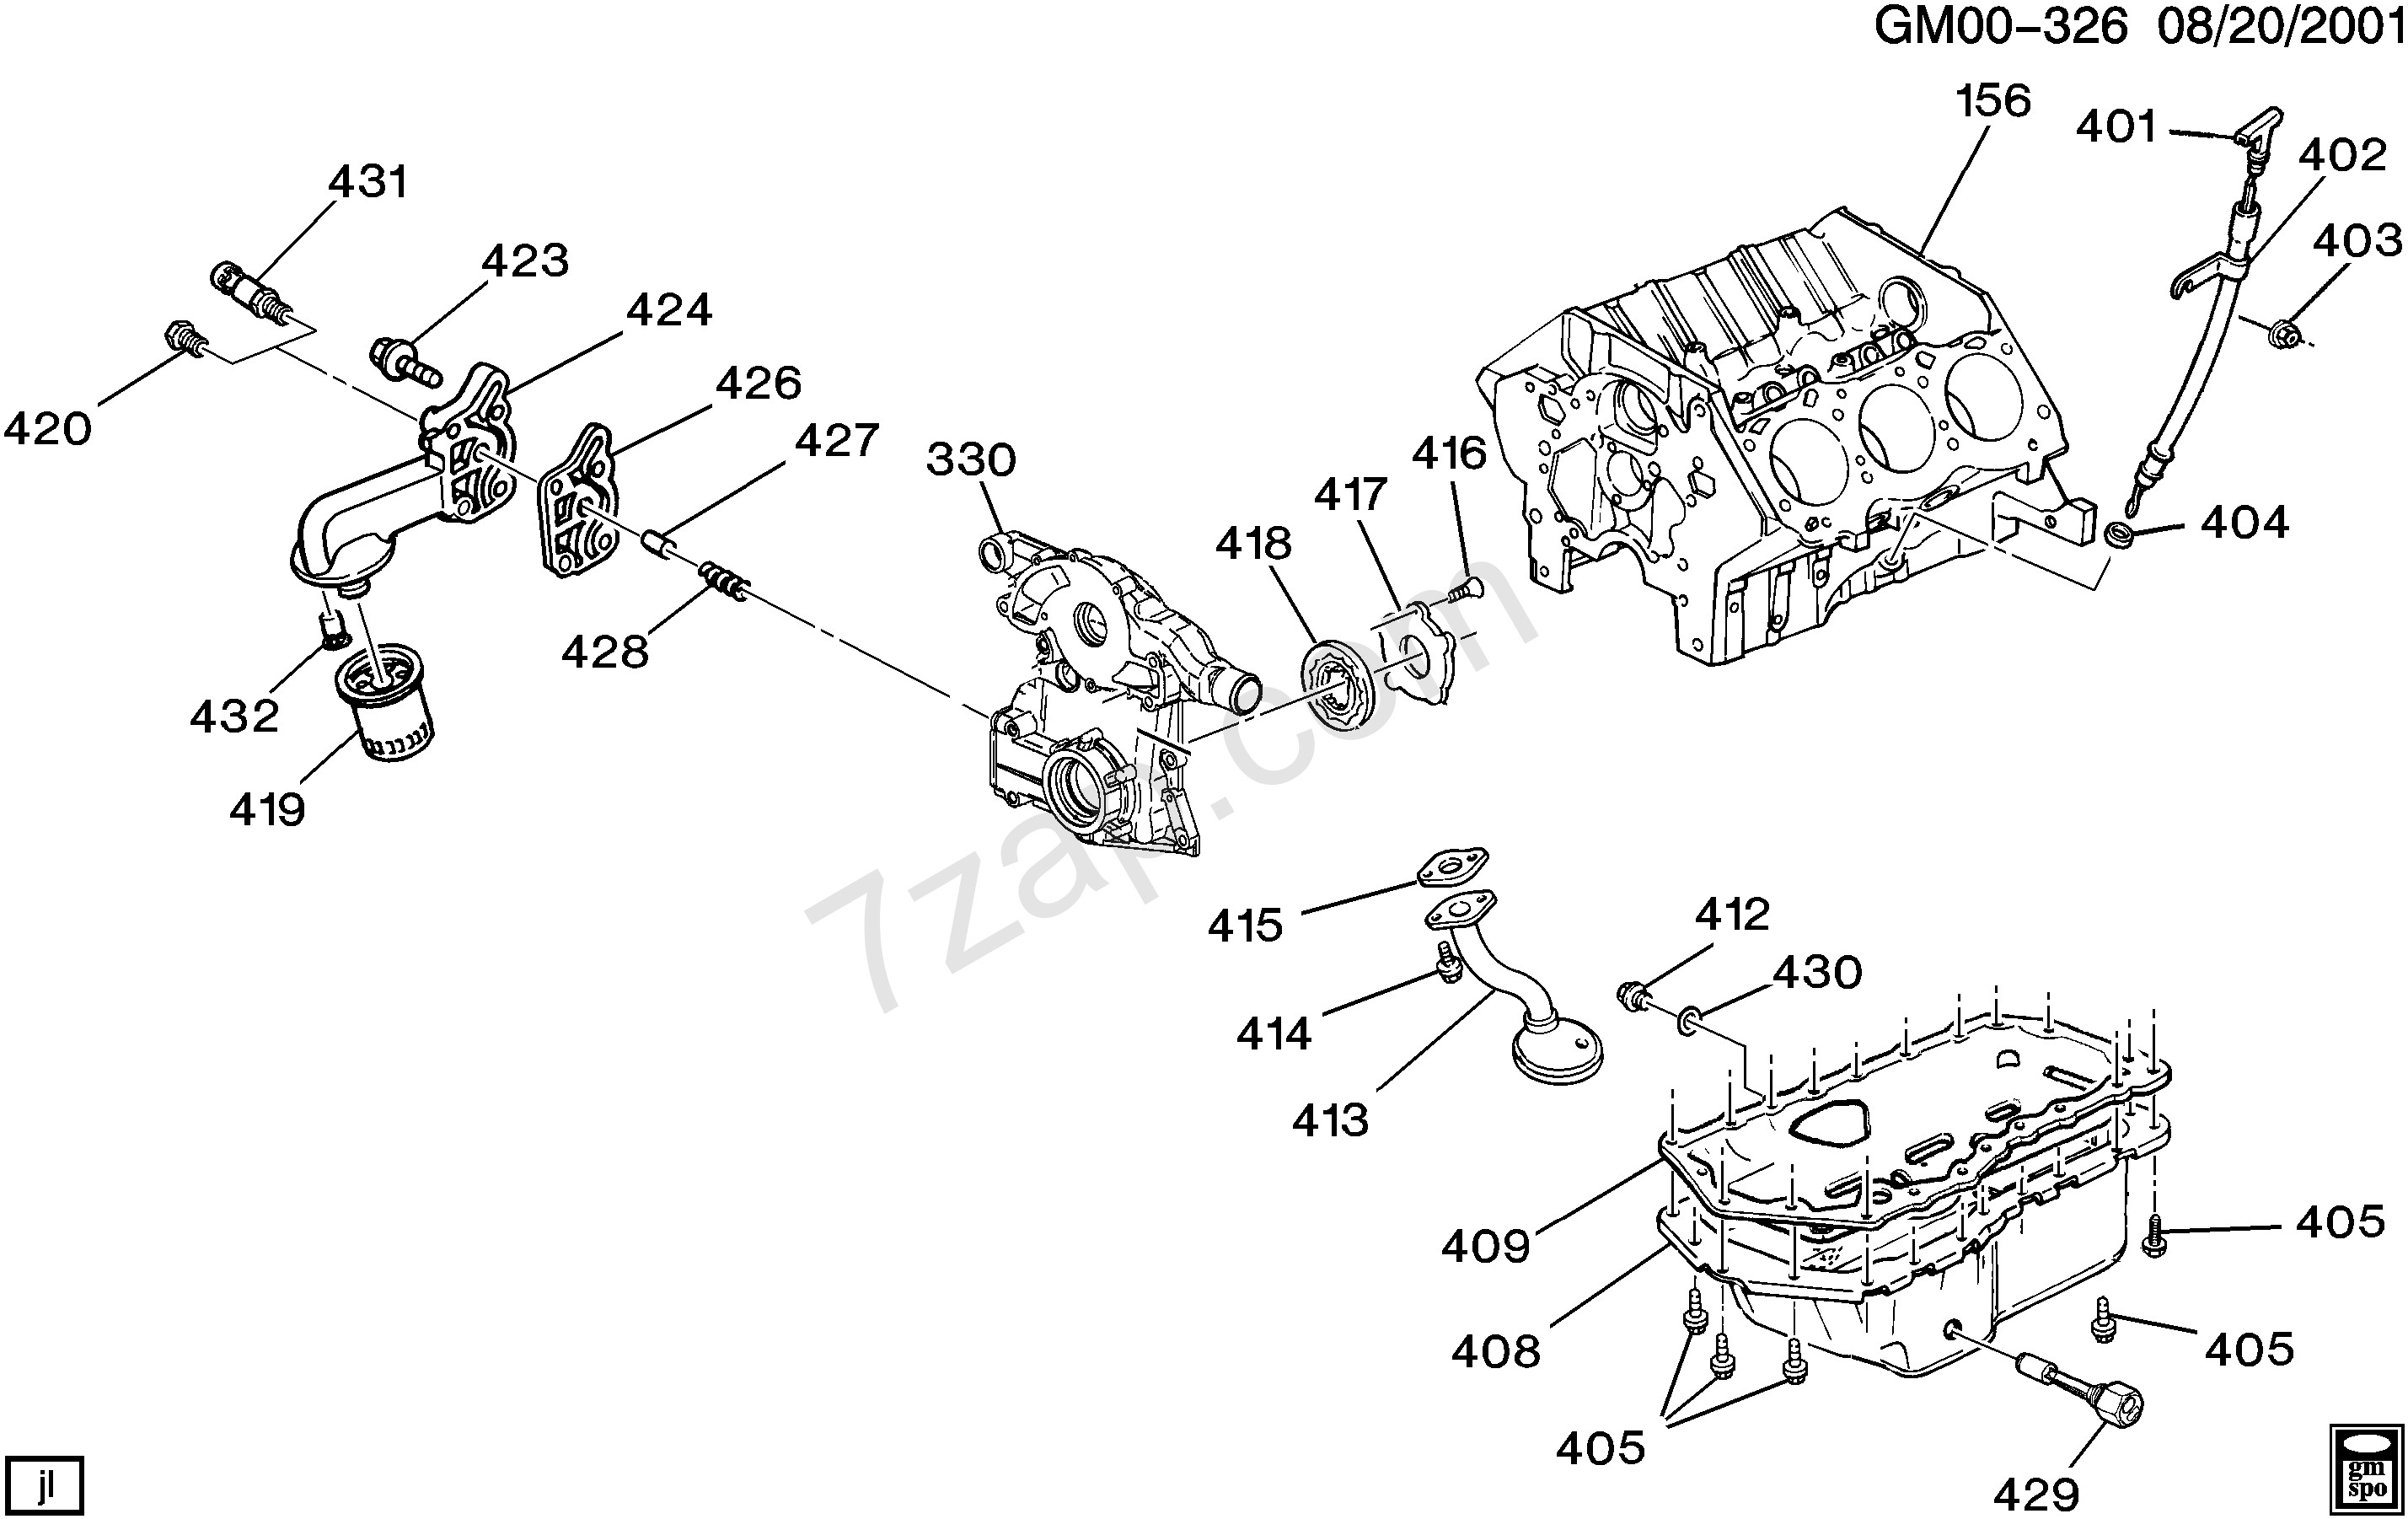 Gm 3 8l Engine Diagram Free Wiring For You Of V6 3800 8 Chevy Todays Rh 16 5 9 1813weddingbarn Com Series 2